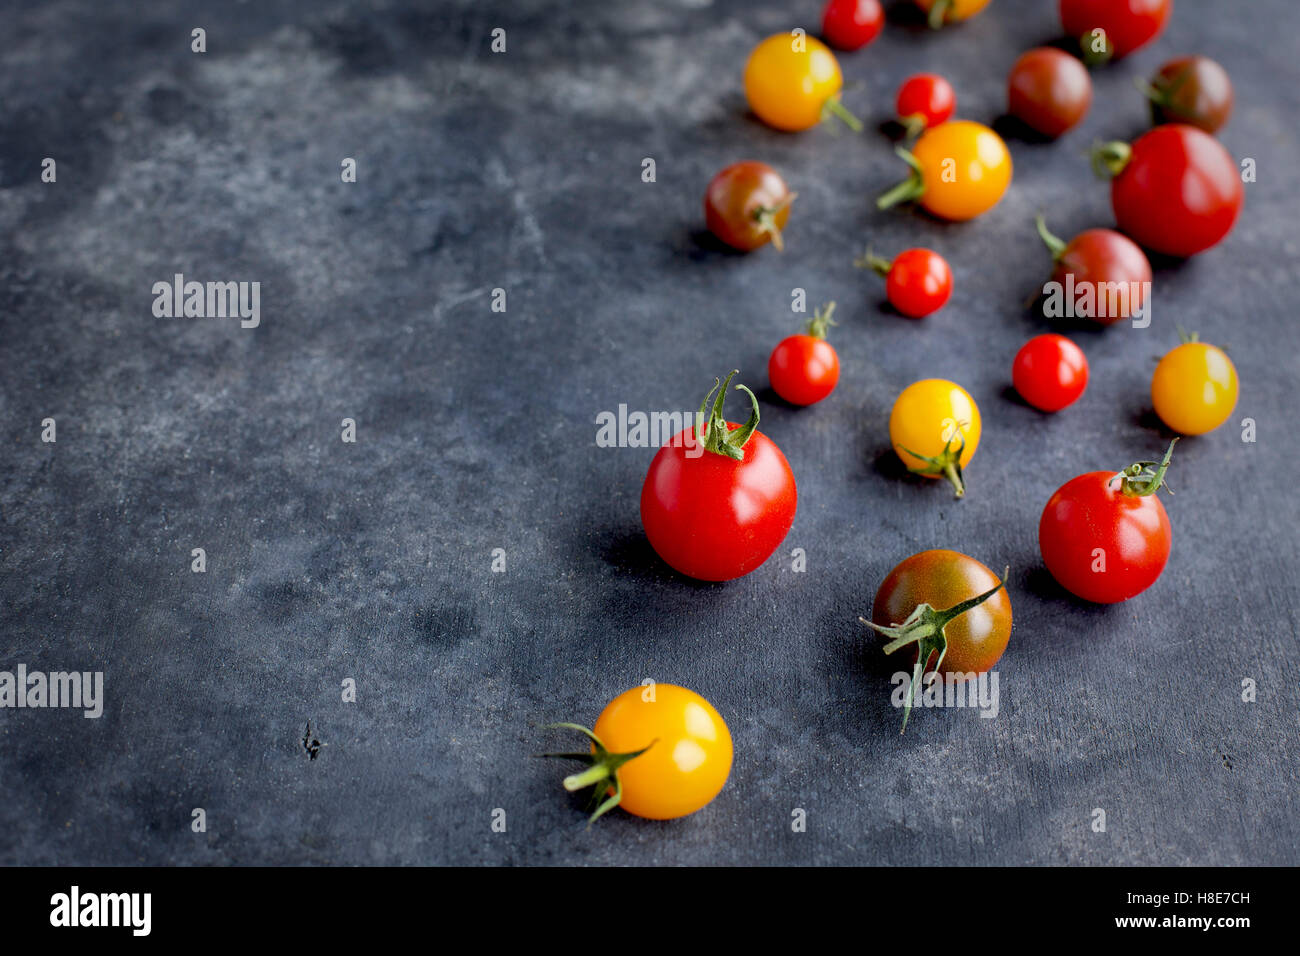 Beige ceramic bowl of cherry tomatoes. Photographed on a black/grey background from front view. - Stock Image